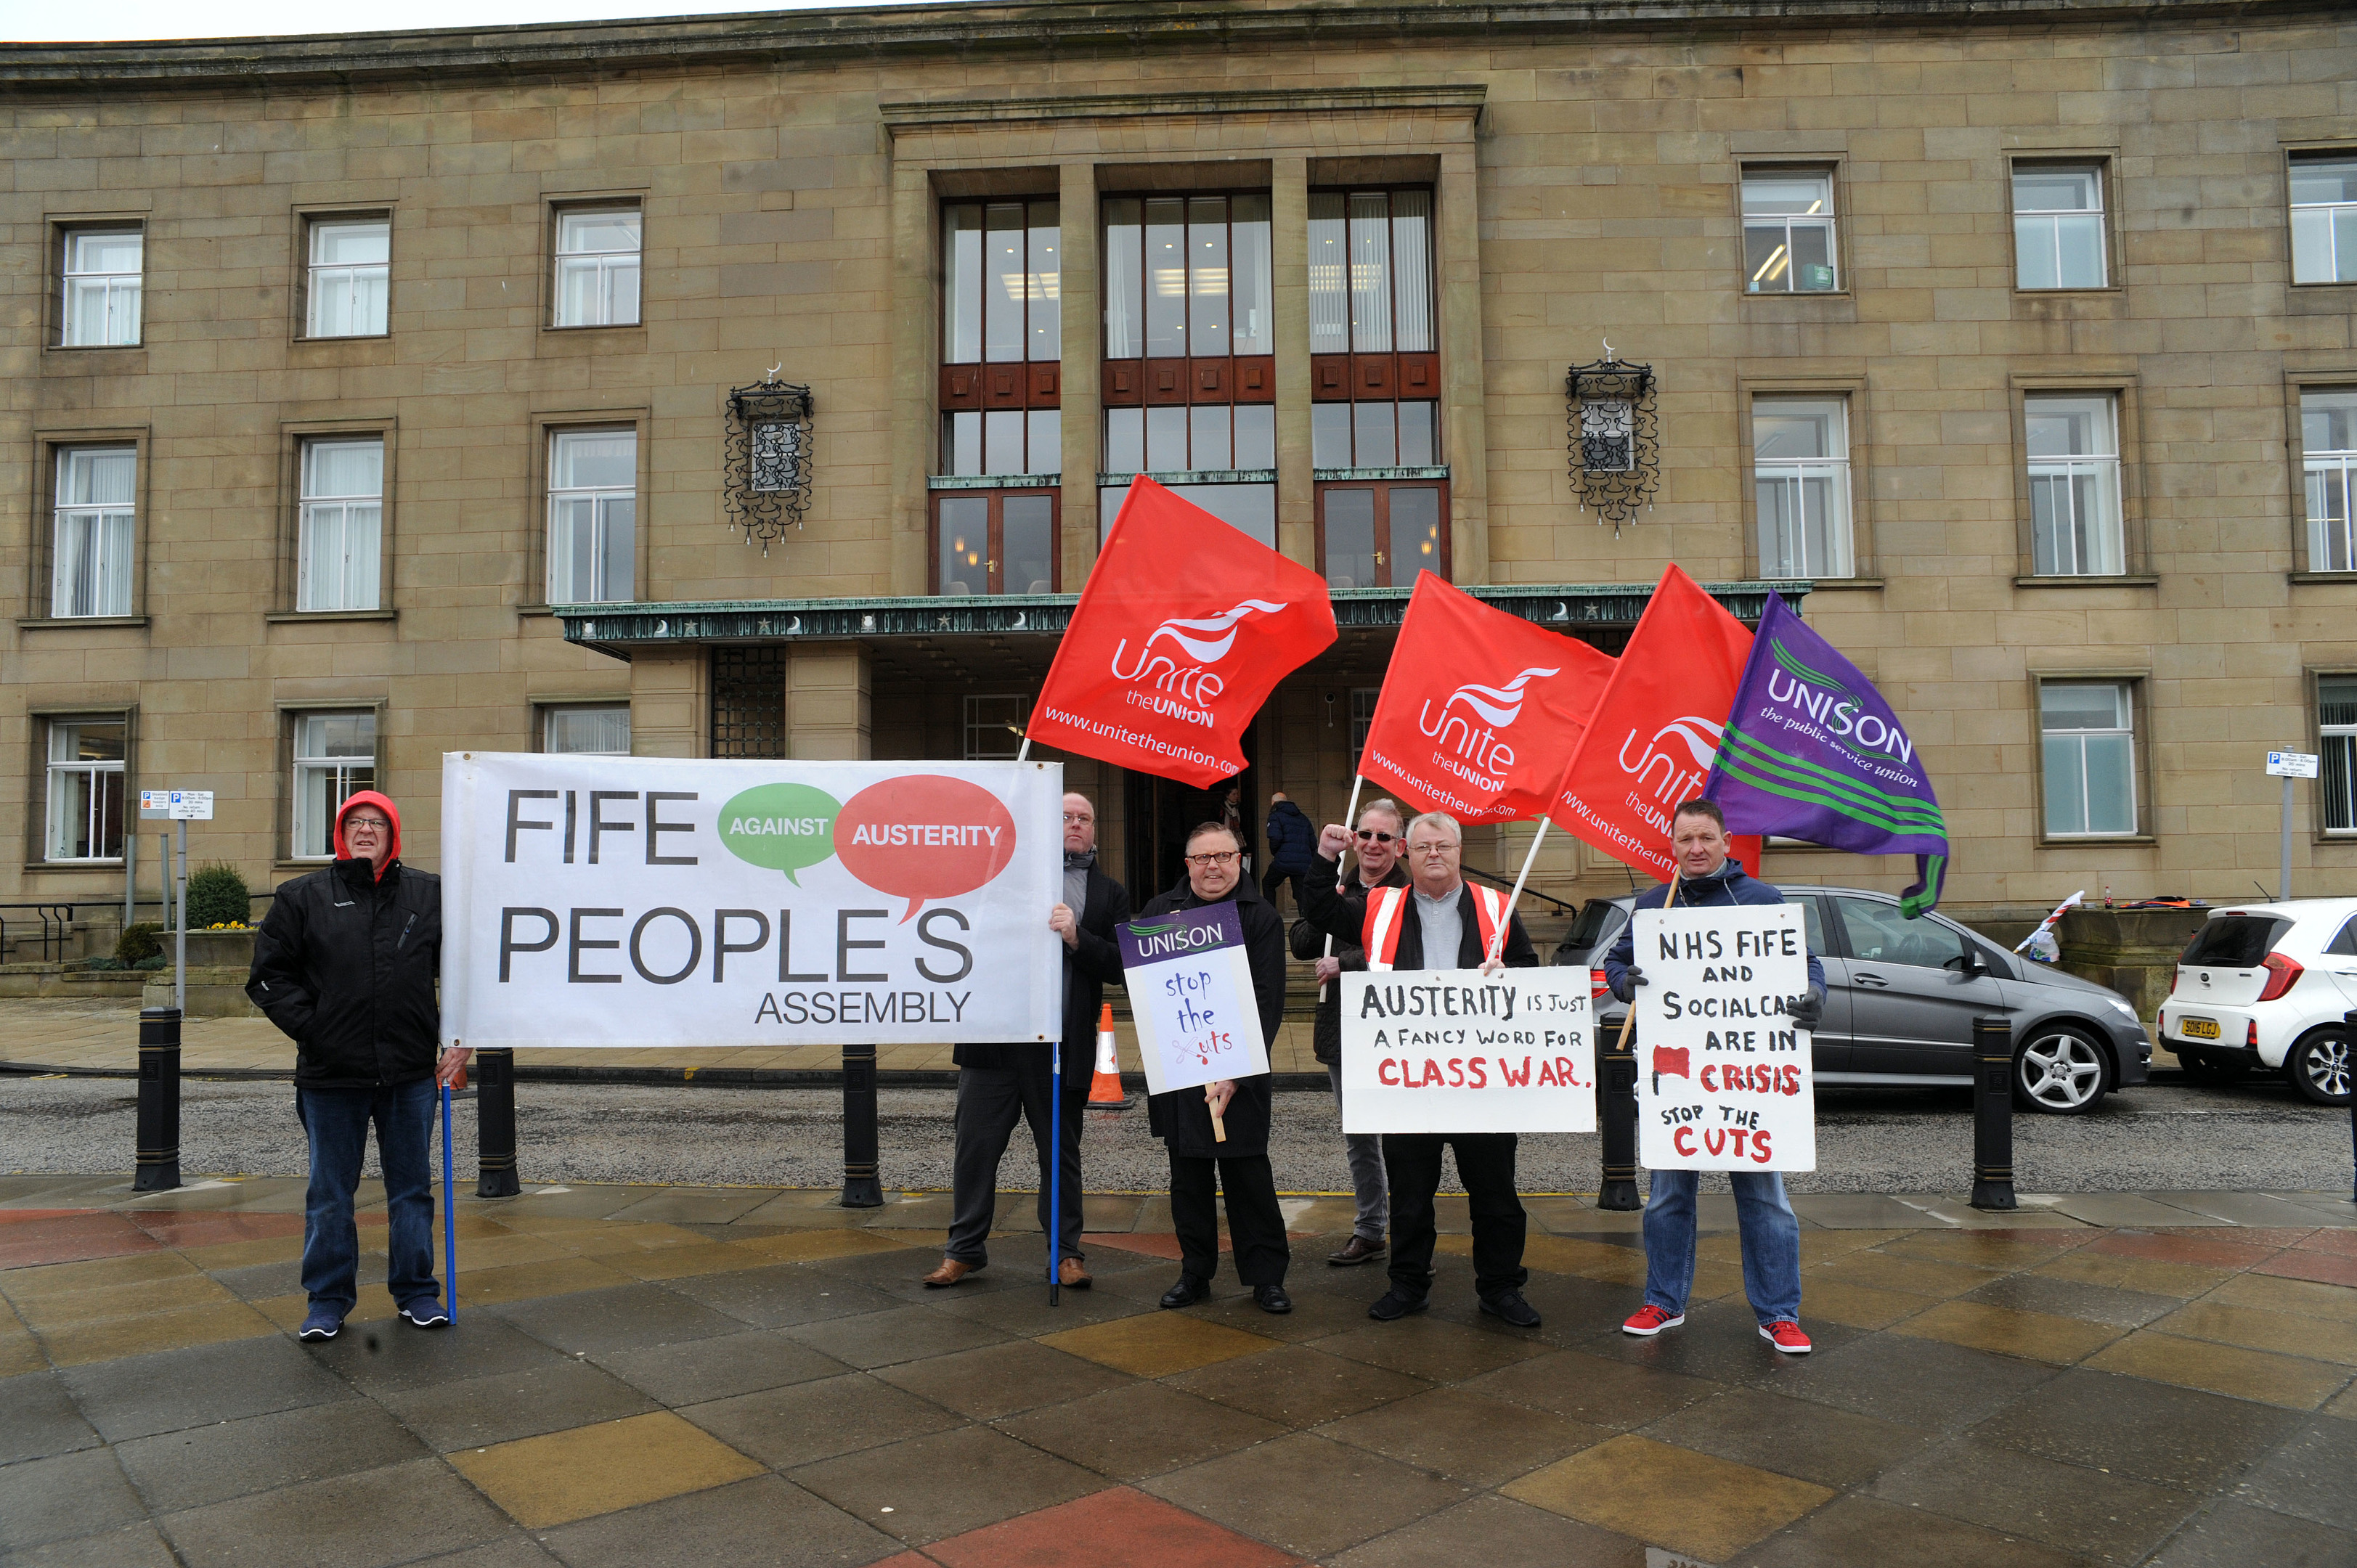 A small group of anti-cuts protesters staged a noisy protest outside the meeting.